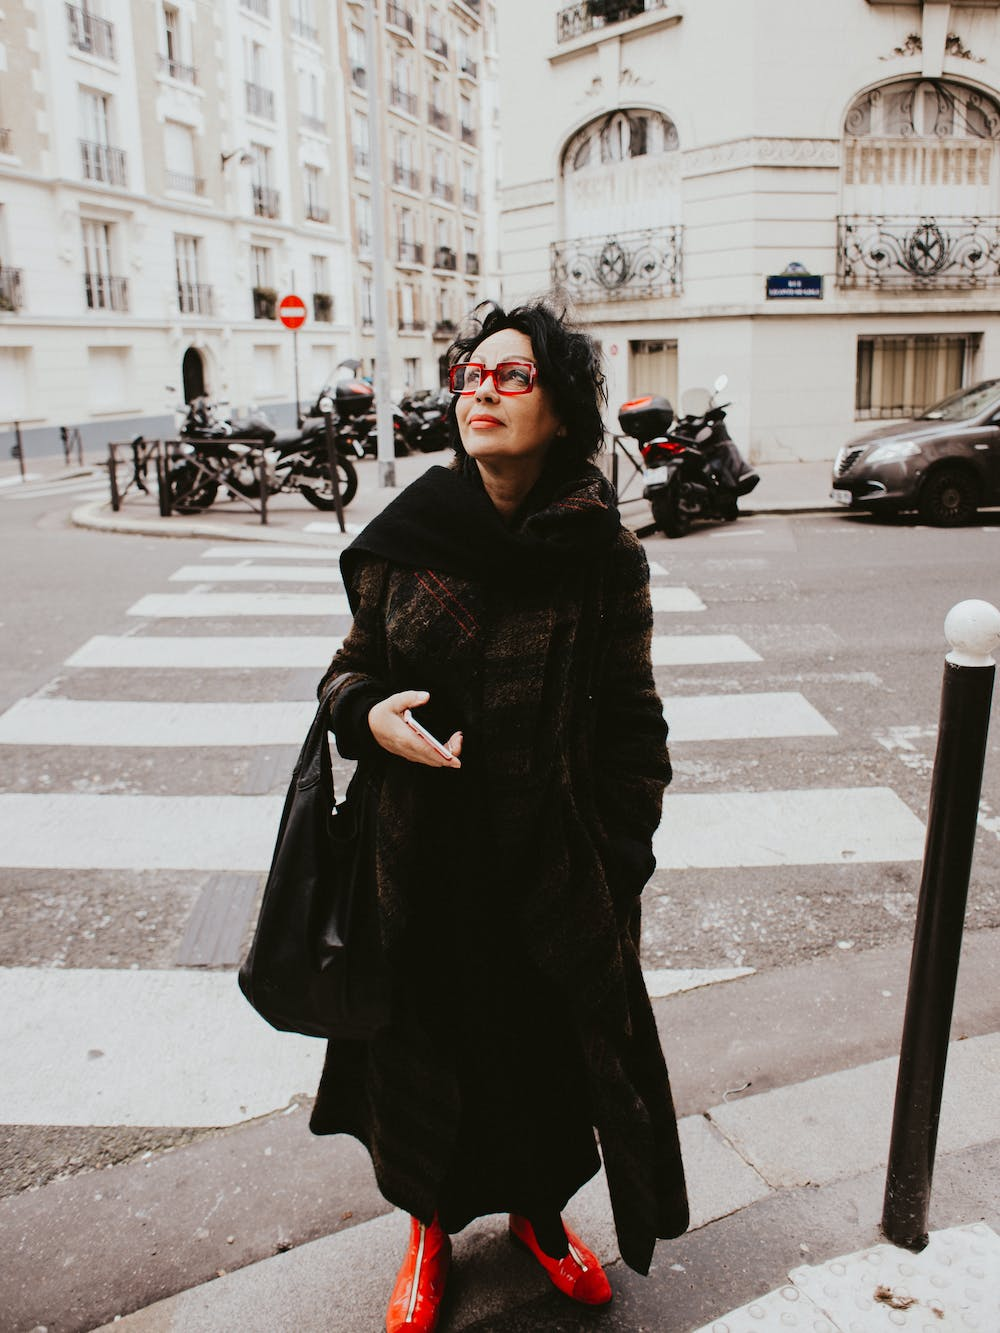 Woman wearing black coat and staring at a building | Photo: Pexels